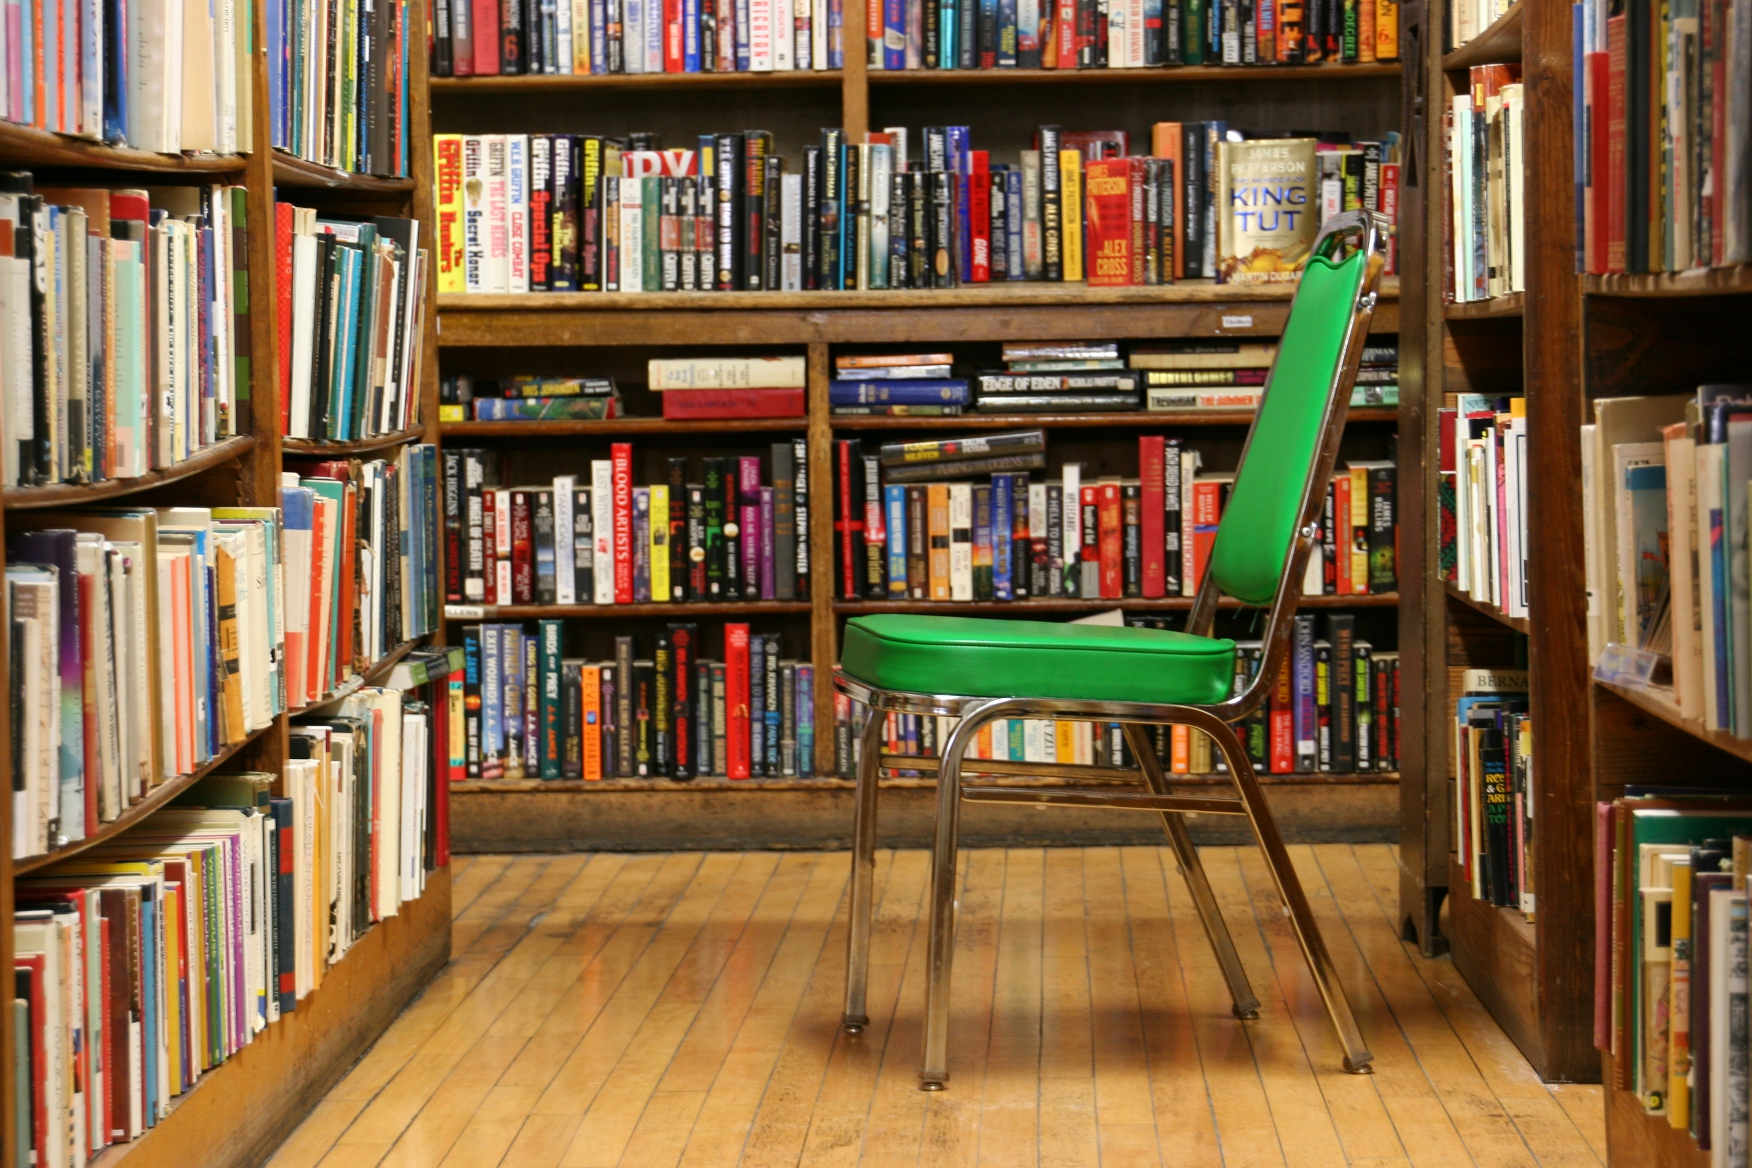 Pleasing Bookstore 74 Green Chair Among Bookshelves Minnesota Download Free Architecture Designs Jebrpmadebymaigaardcom